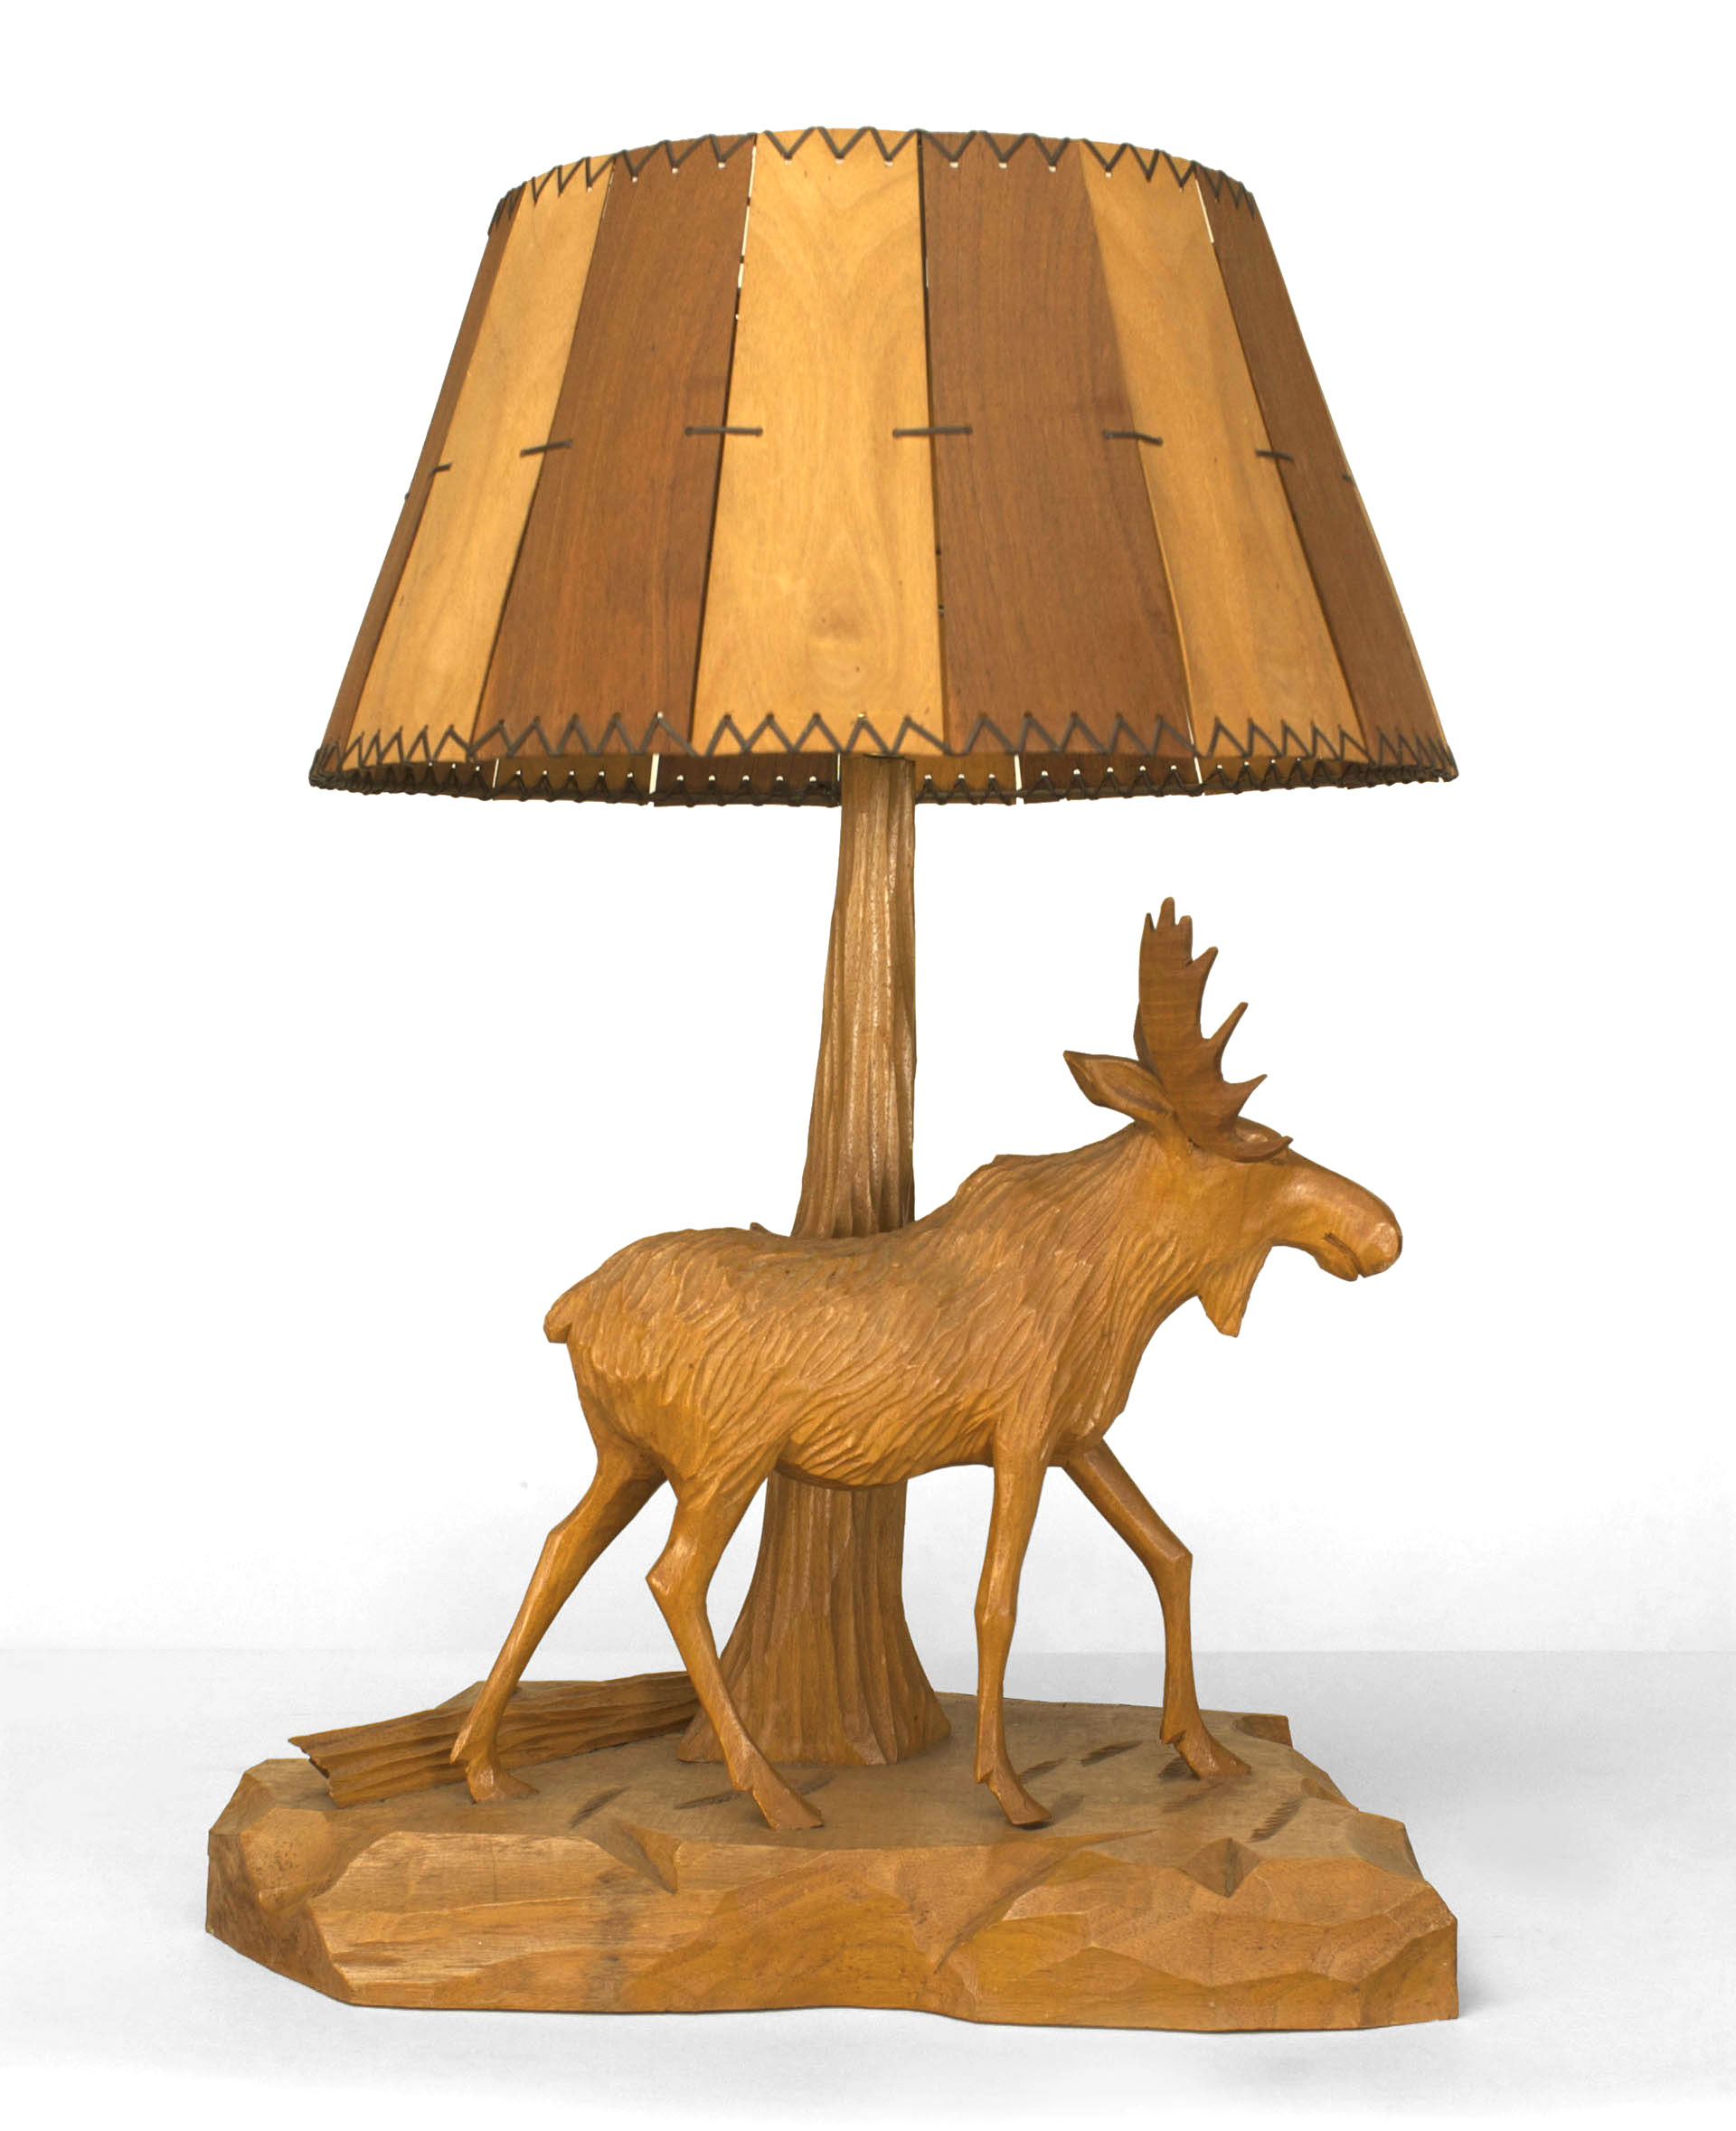 Rustic adirondack style poss canadian 20th cent stained maple table lamp maple in stock 285000 aloadofball Gallery